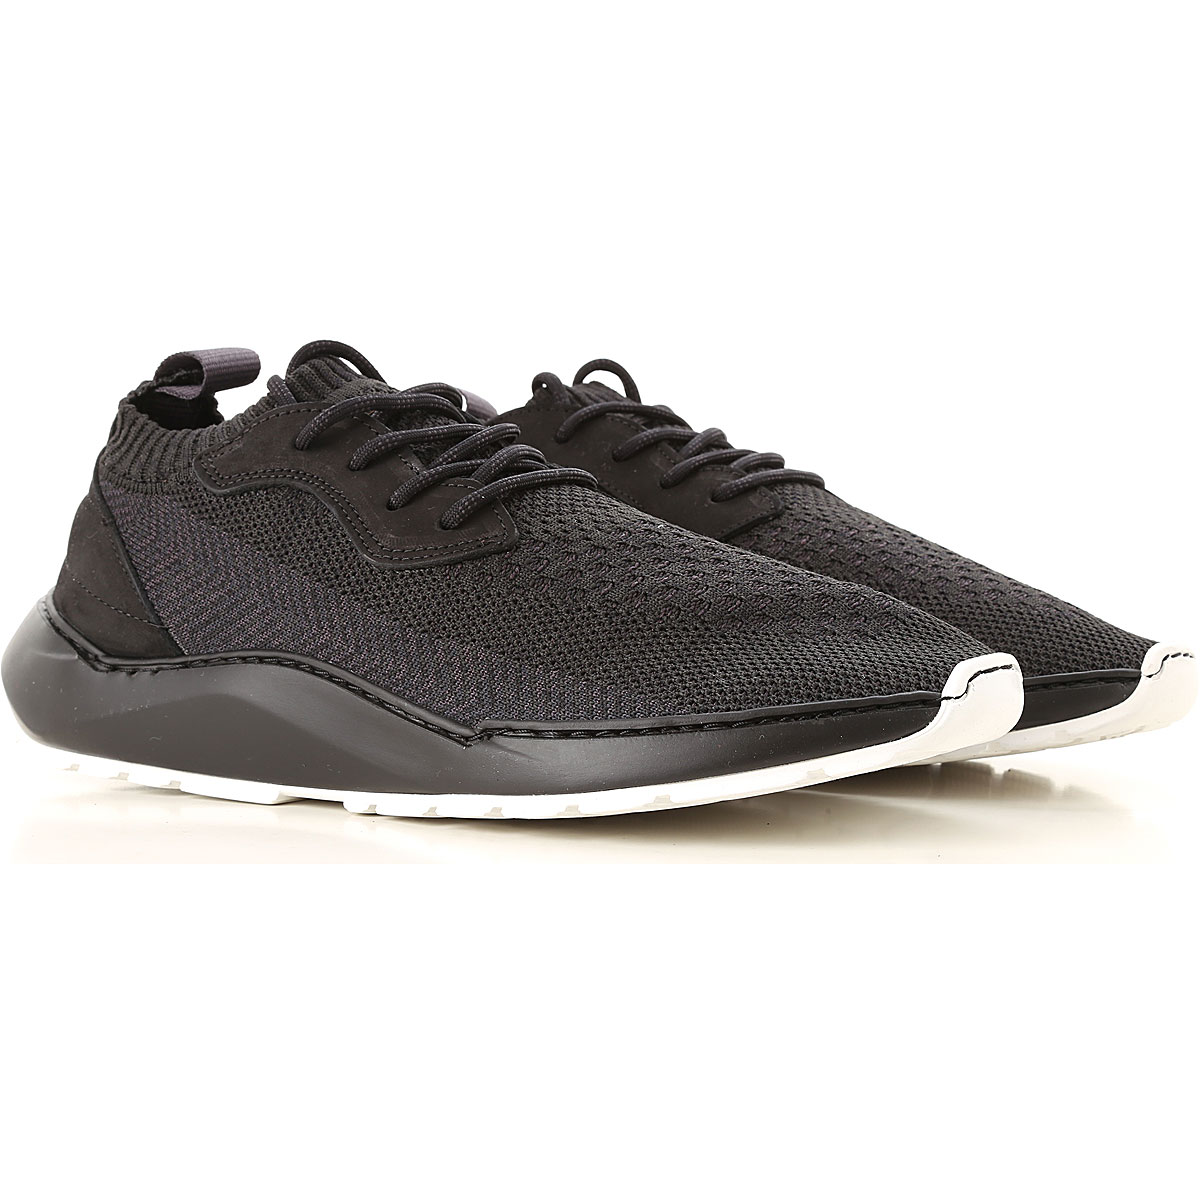 Image of Filling Pieces Sneakers for Men, Black, Knitted, 2017, 10 10.5 11.5 7.5 8 9